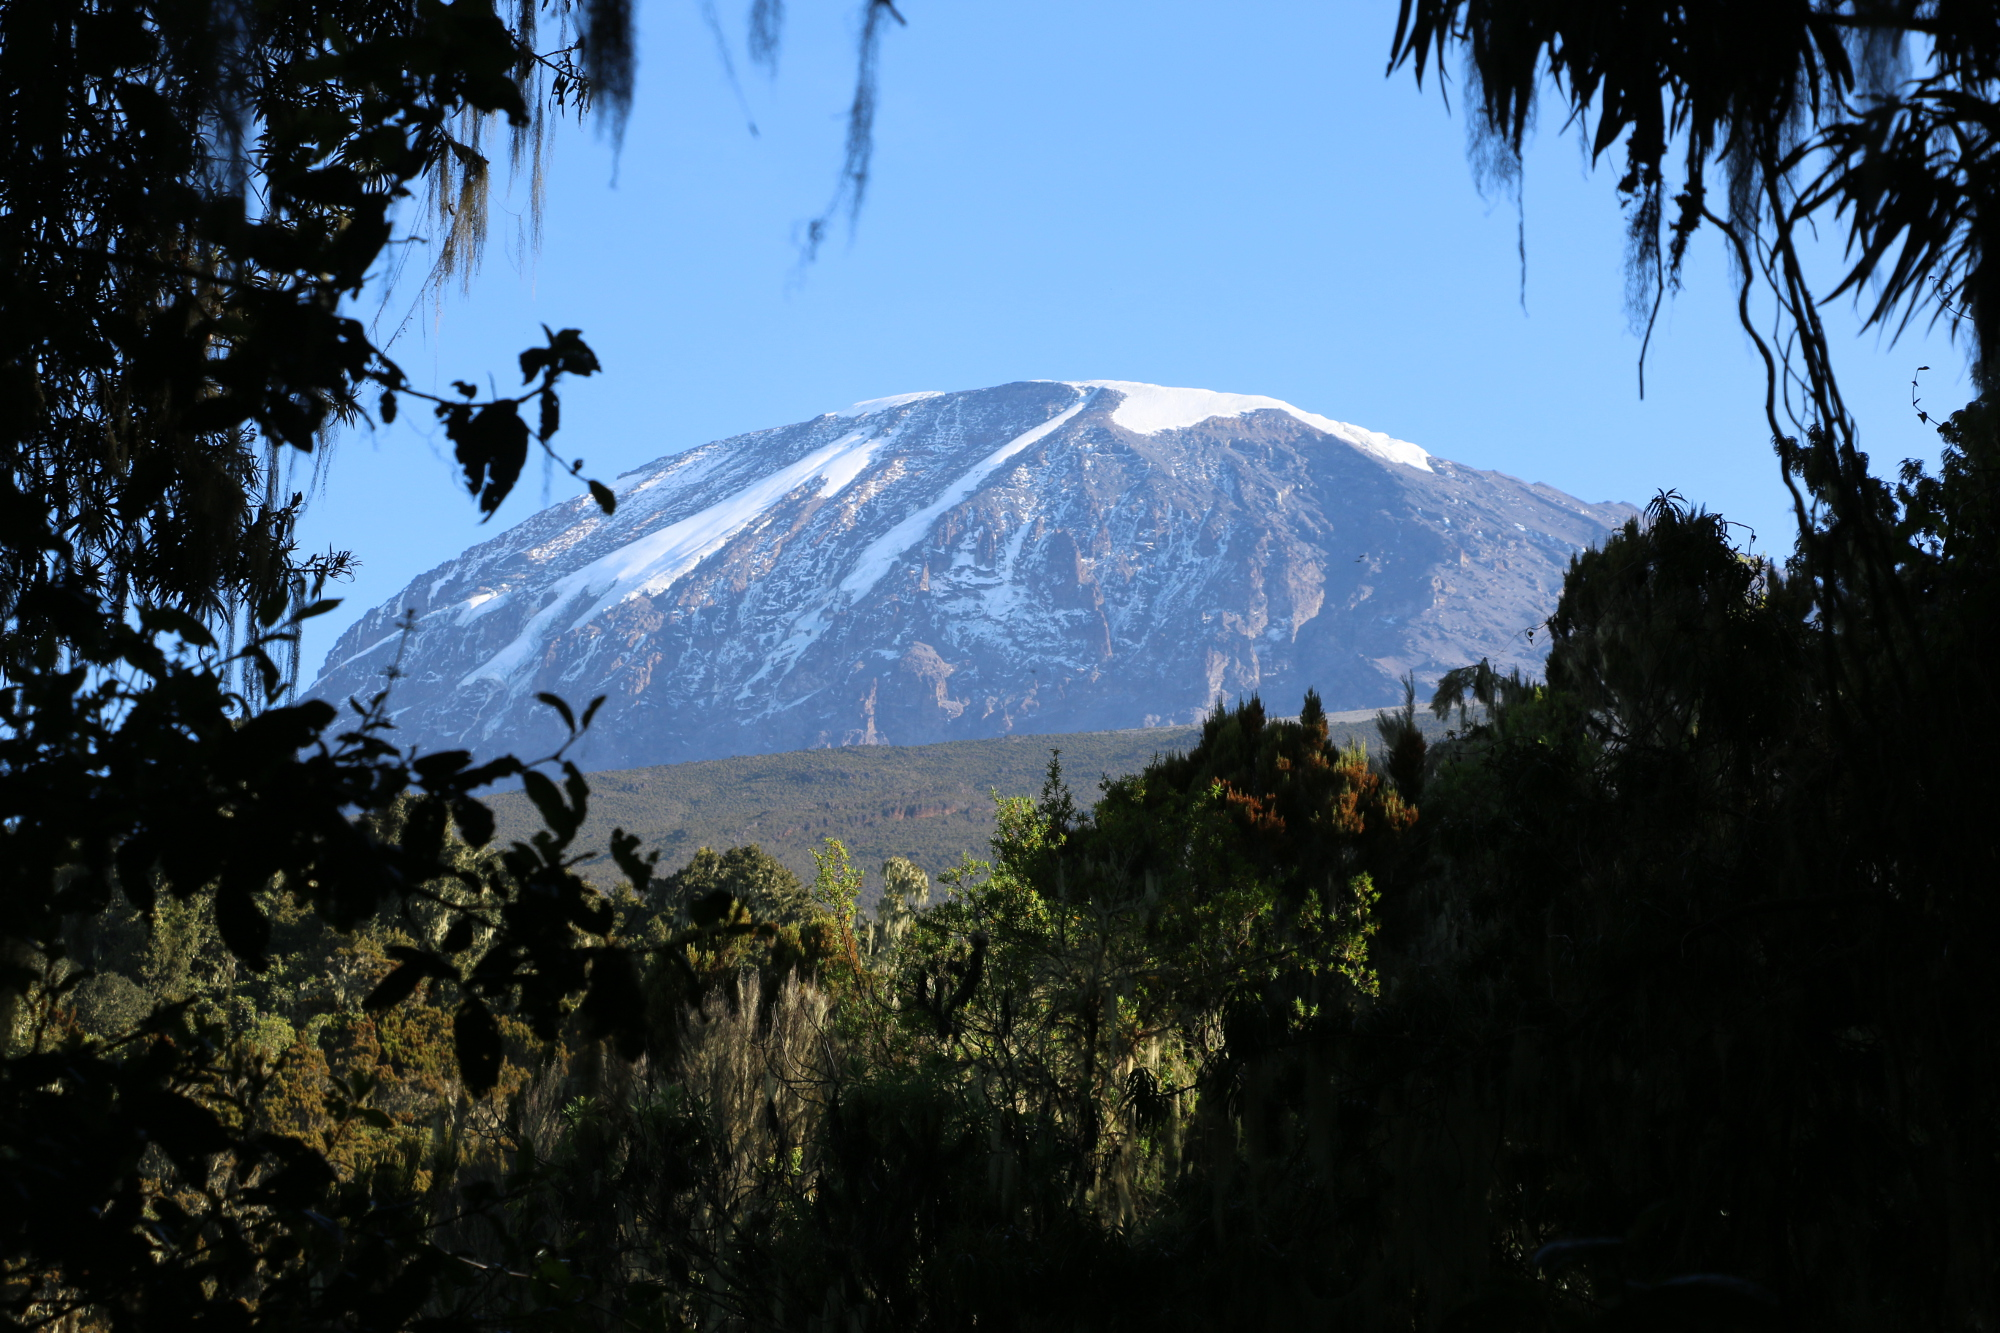 Mount Kilimanjaro from a distance